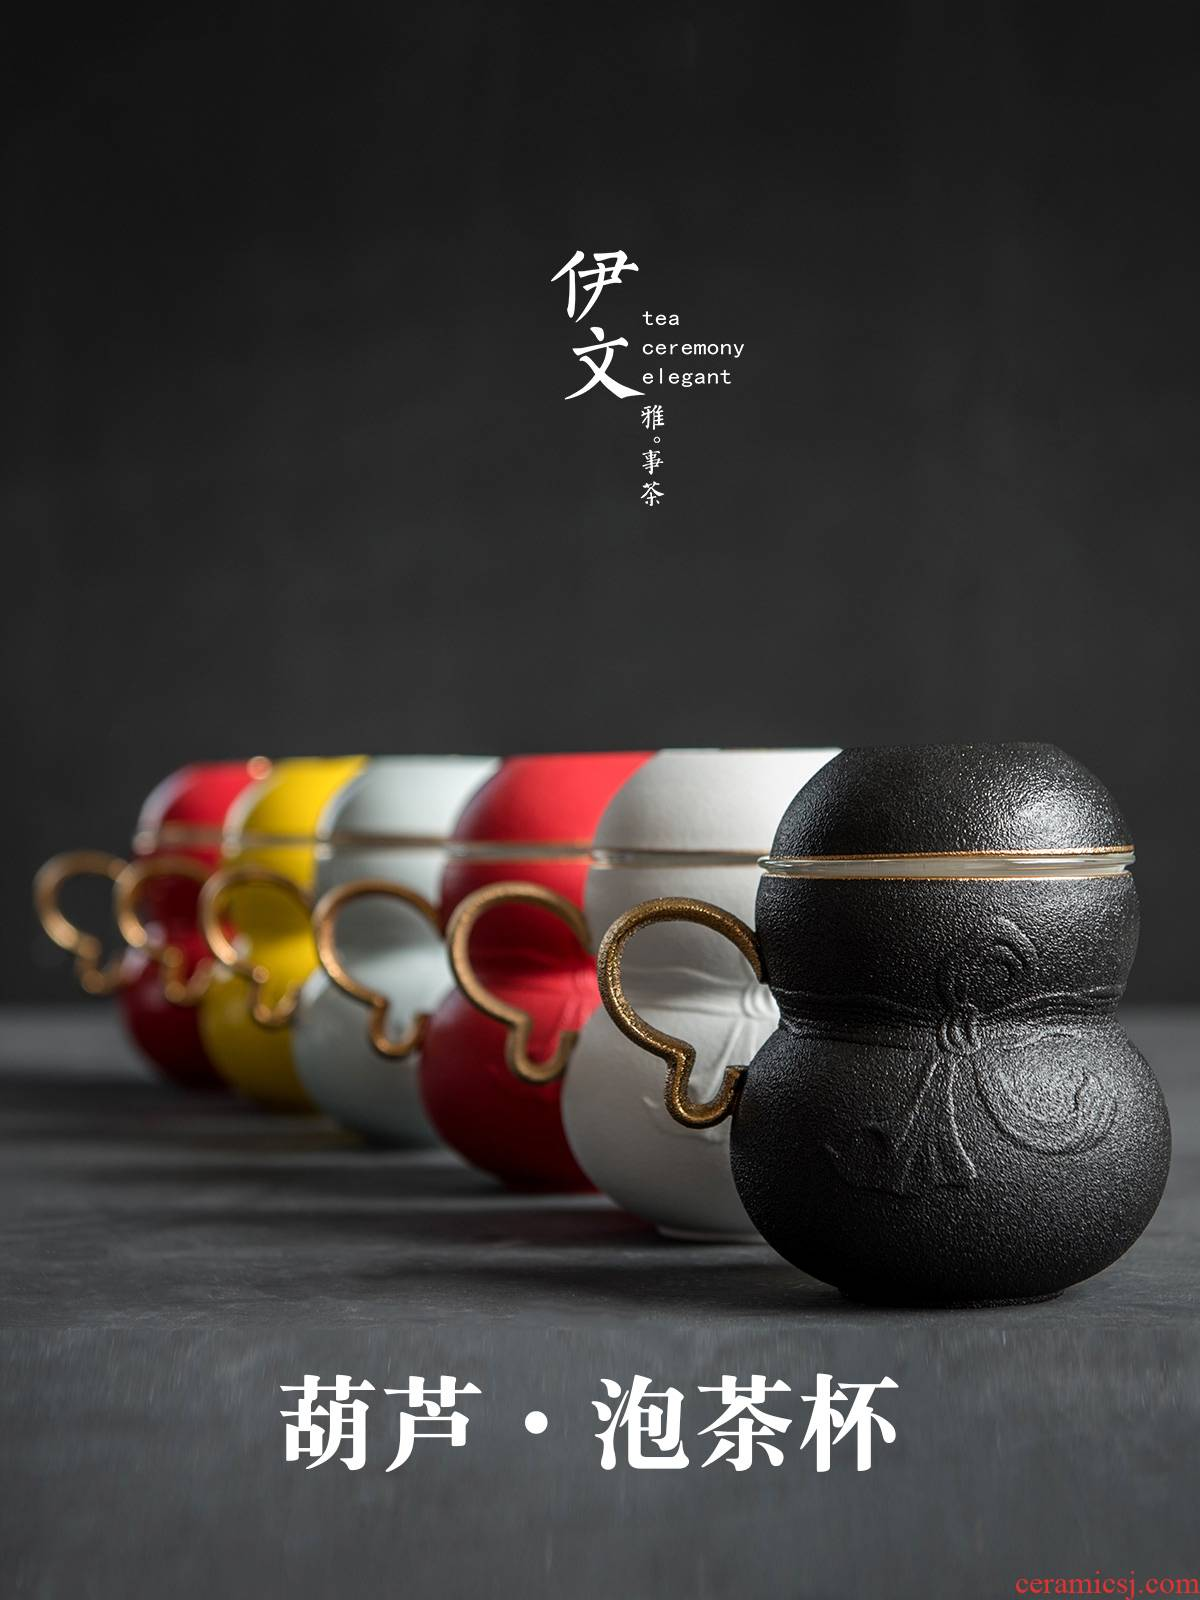 Evan office tea cup Japanese ceramic cup with cover kung fu tea tea cup separation of tea cup